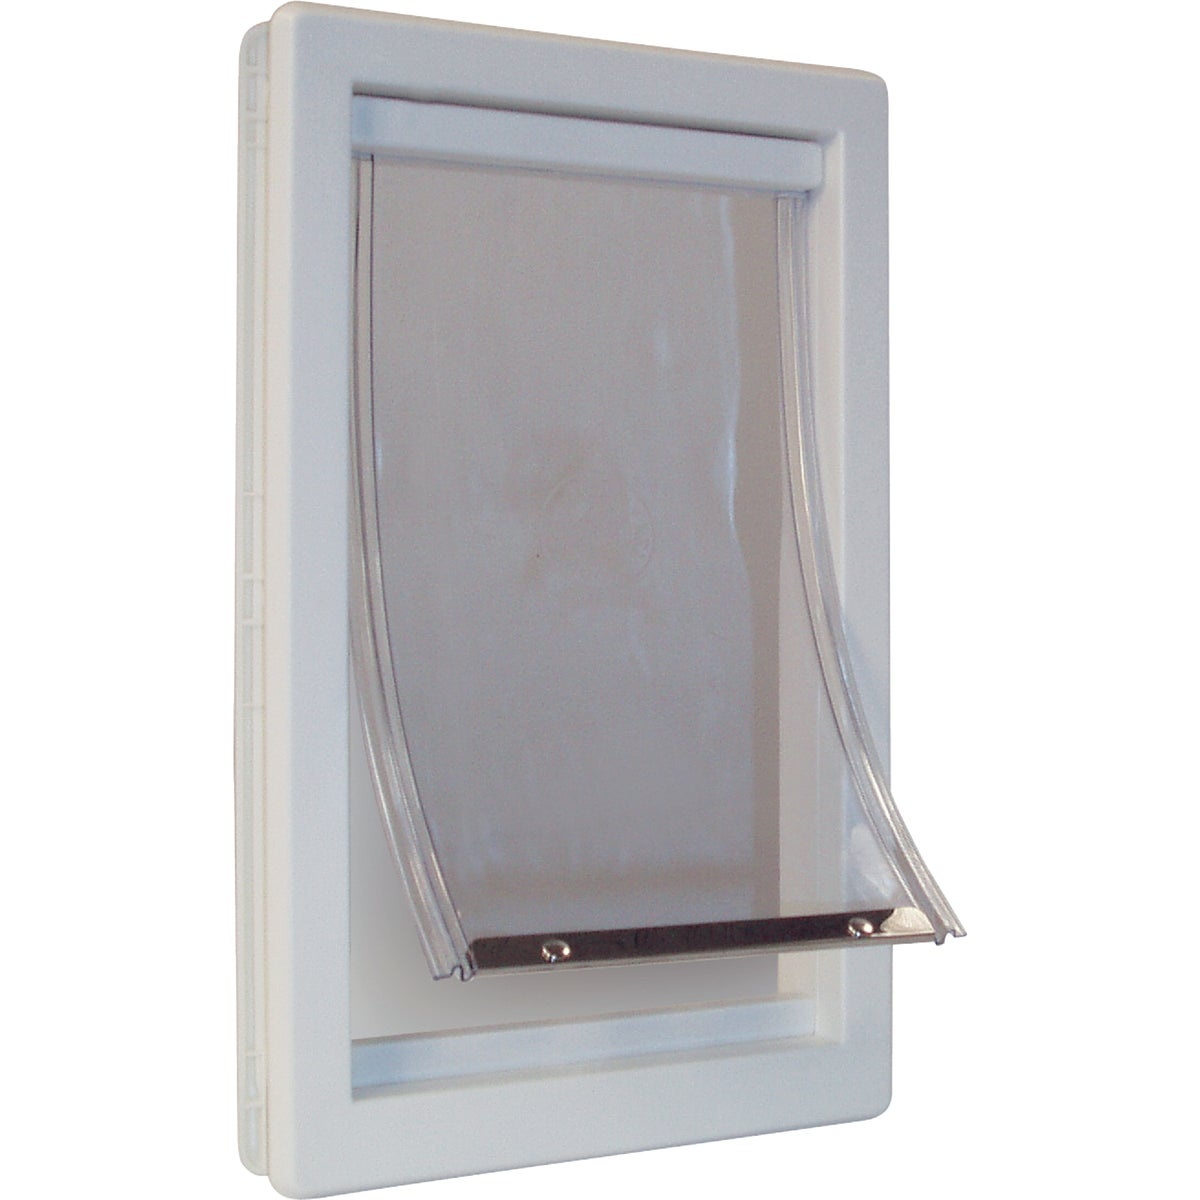 SUPER LRG PLSTC PET DOOR - PPDSL by Ideal Pet Products